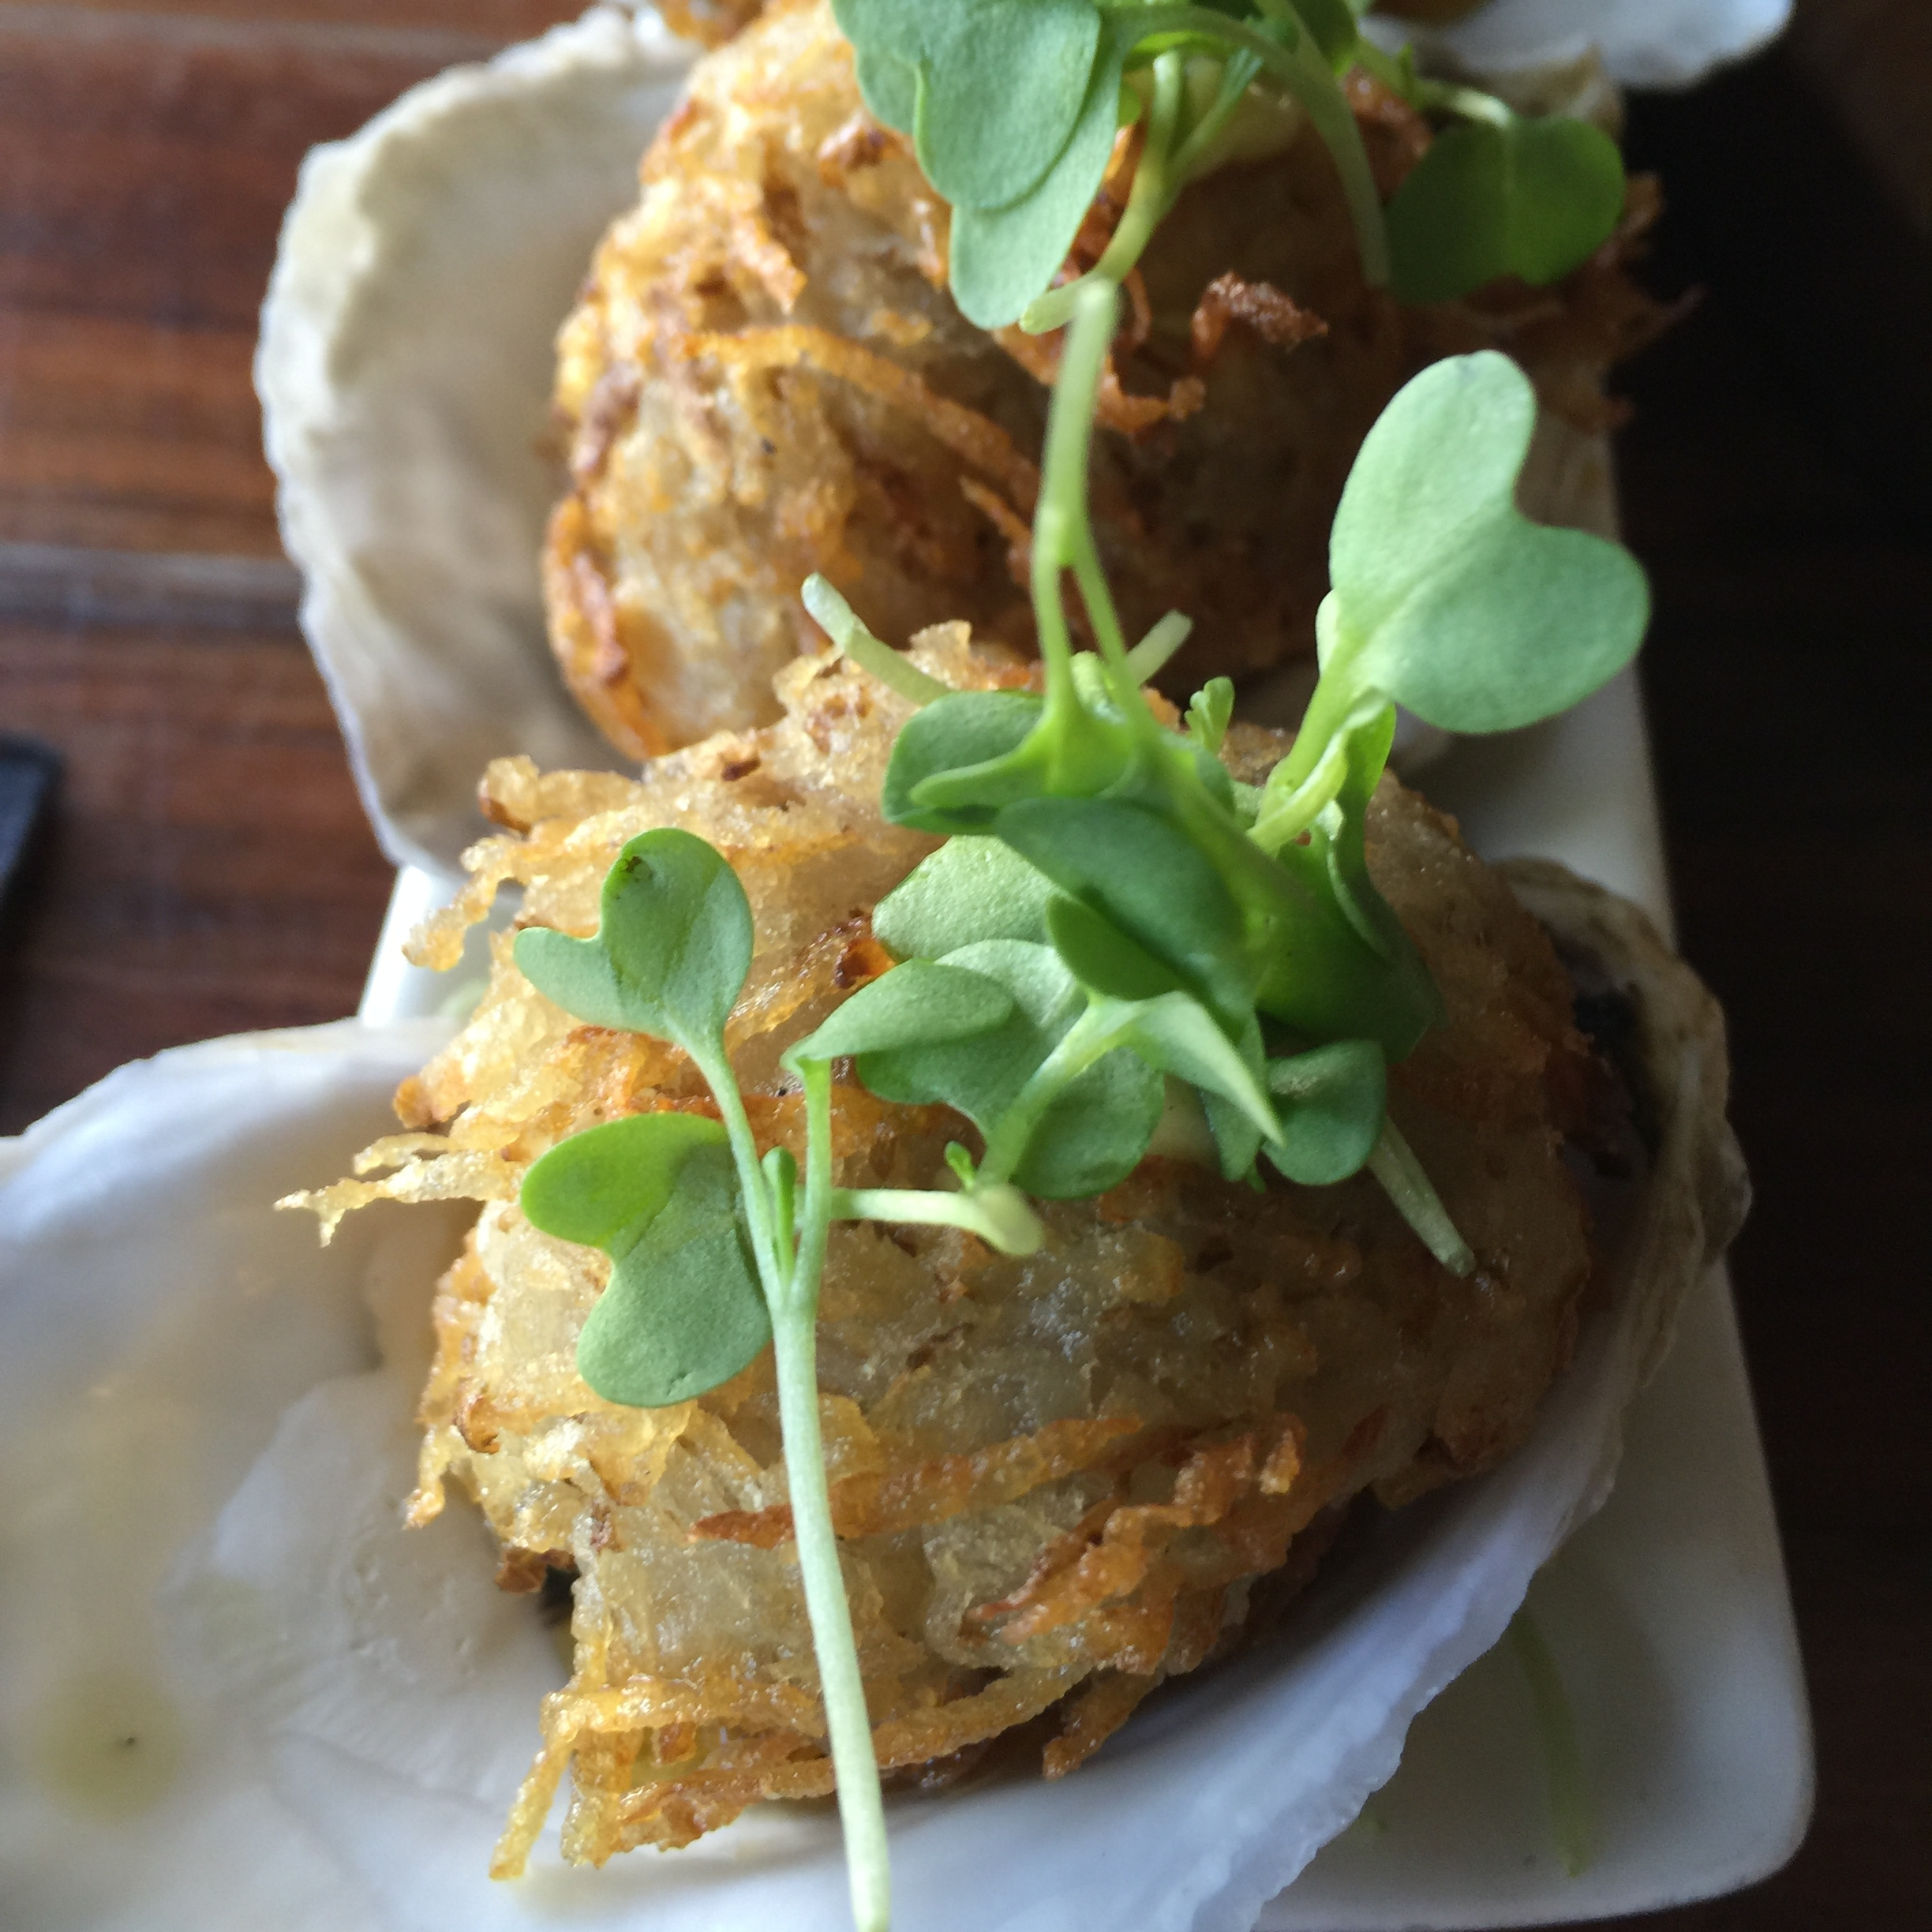 POTATO-CRUSTED OYSTERS